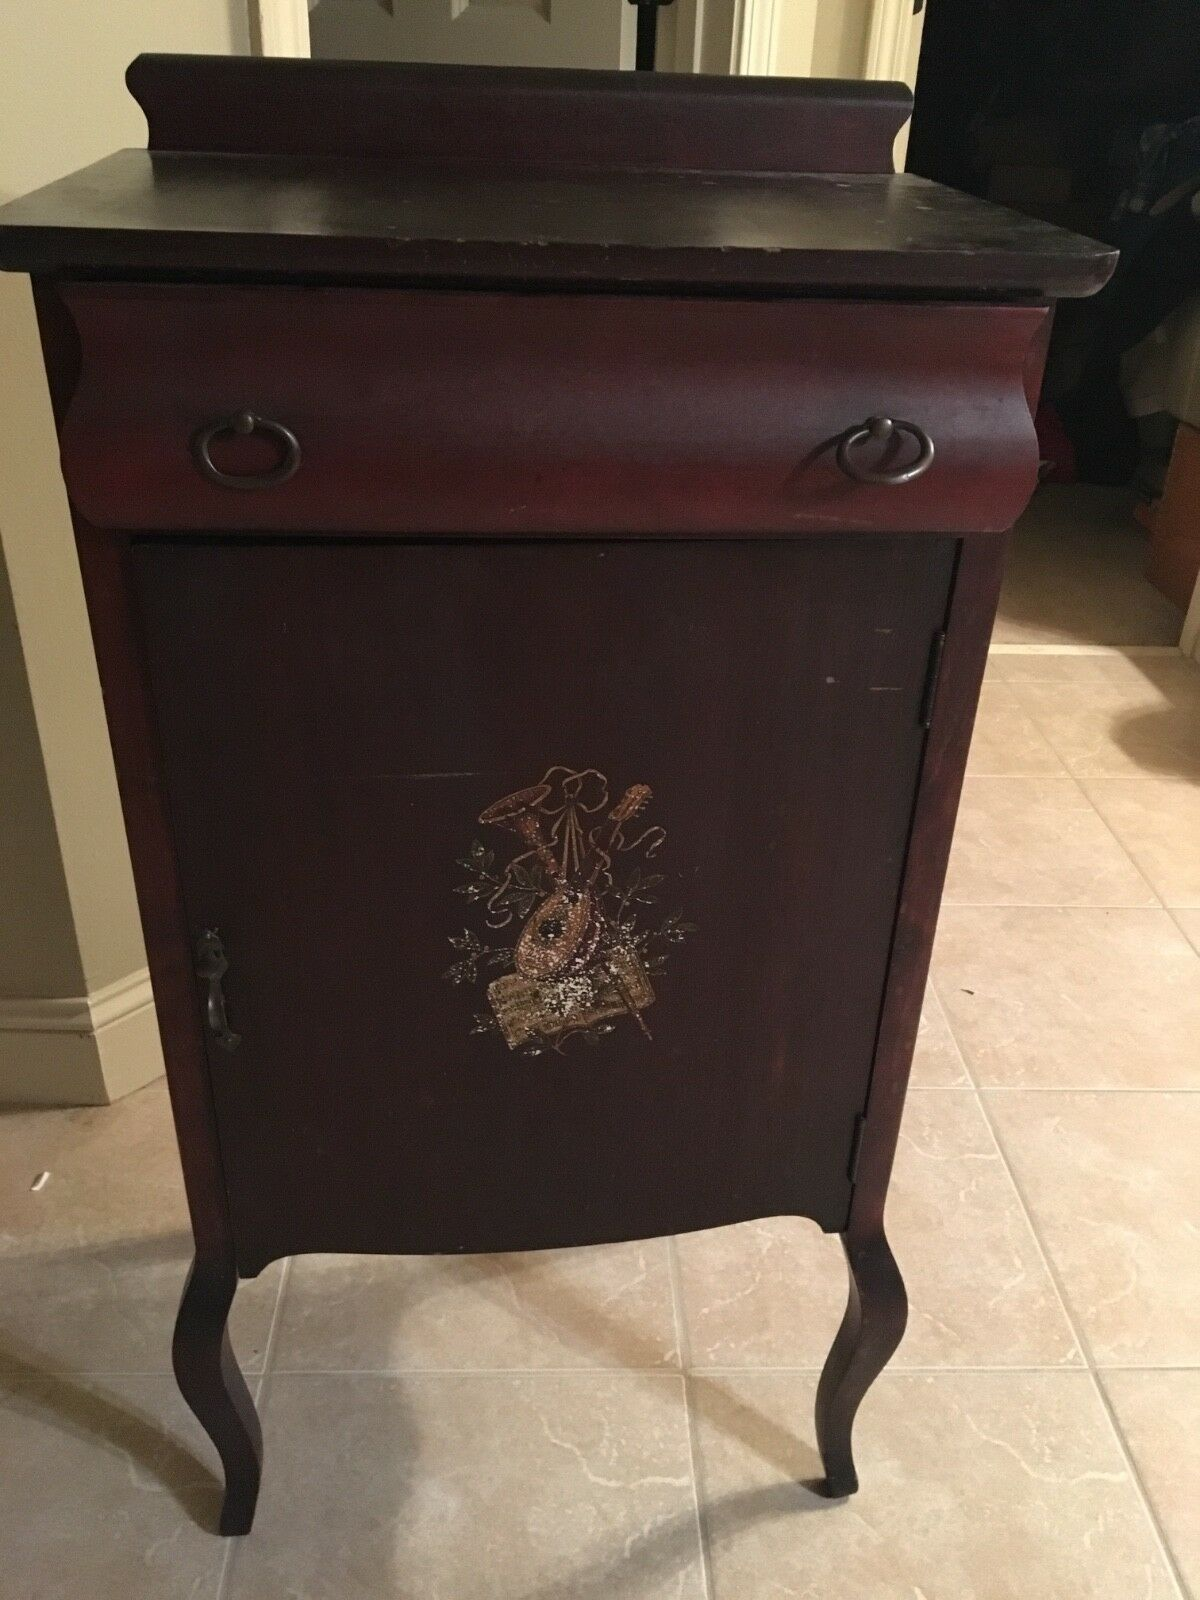 Antique Sheet Music Cabinet-Pick-Up Only N Atlanta 1 of 3 See More - ANTIQUE SHEET MUSIC Cabinet-Pick-Up Only N Atlanta - $70.00 PicClick